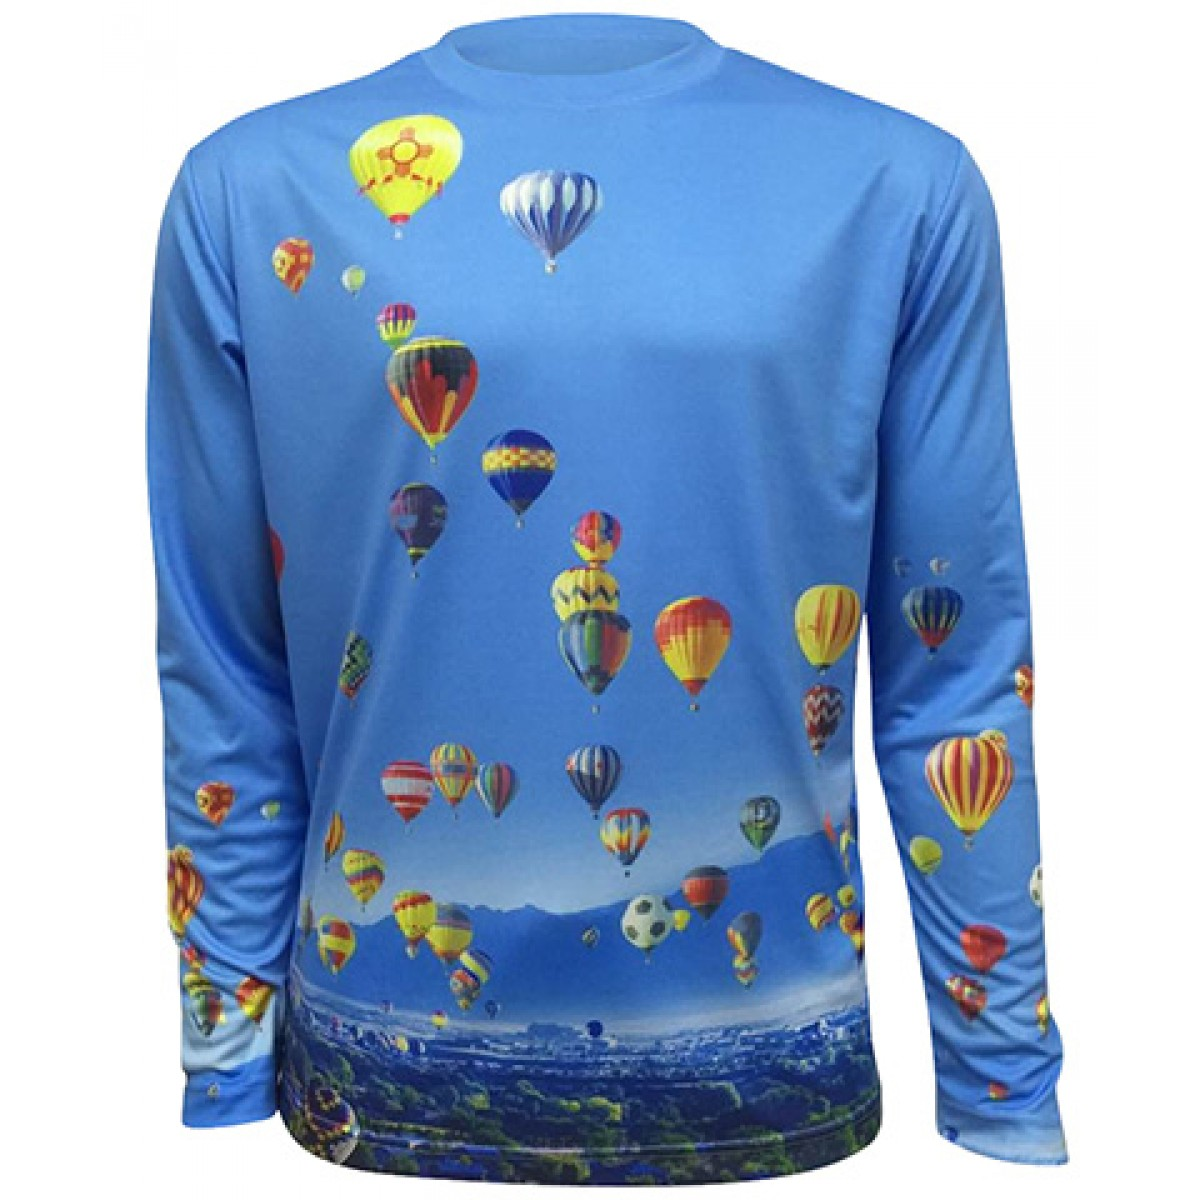 AIBF Sublimated Long Sleeve-Blue-M